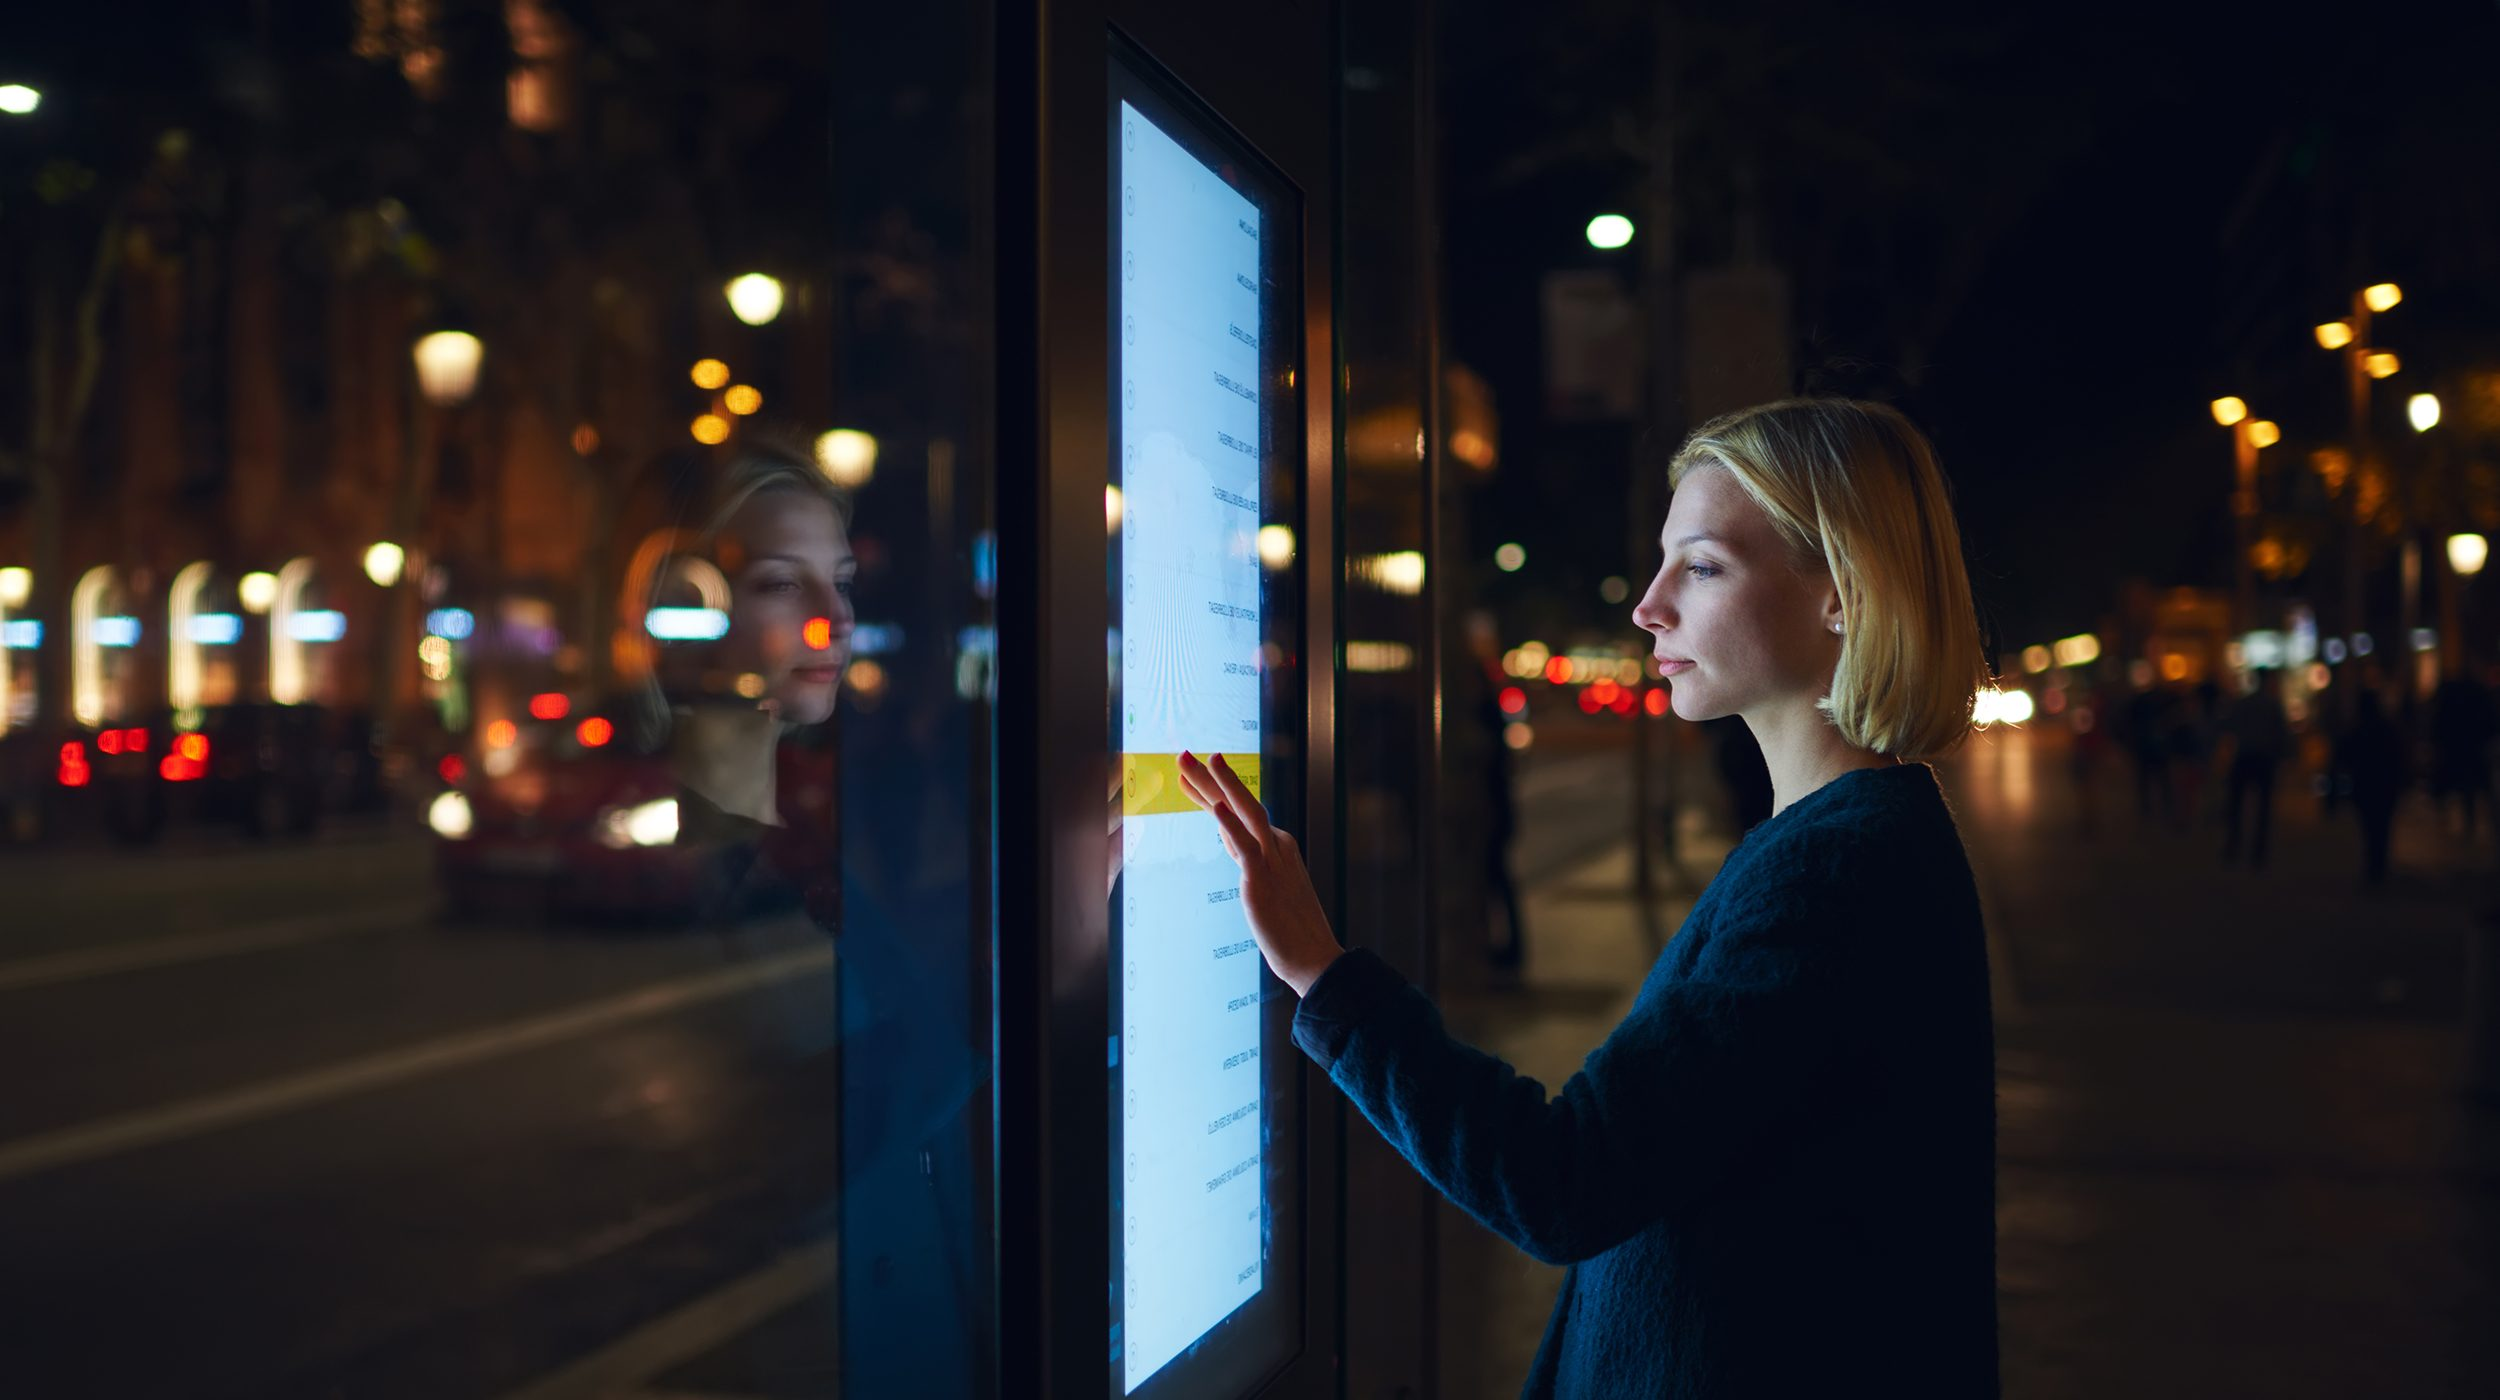 A woman selects information on a transit system dashboard